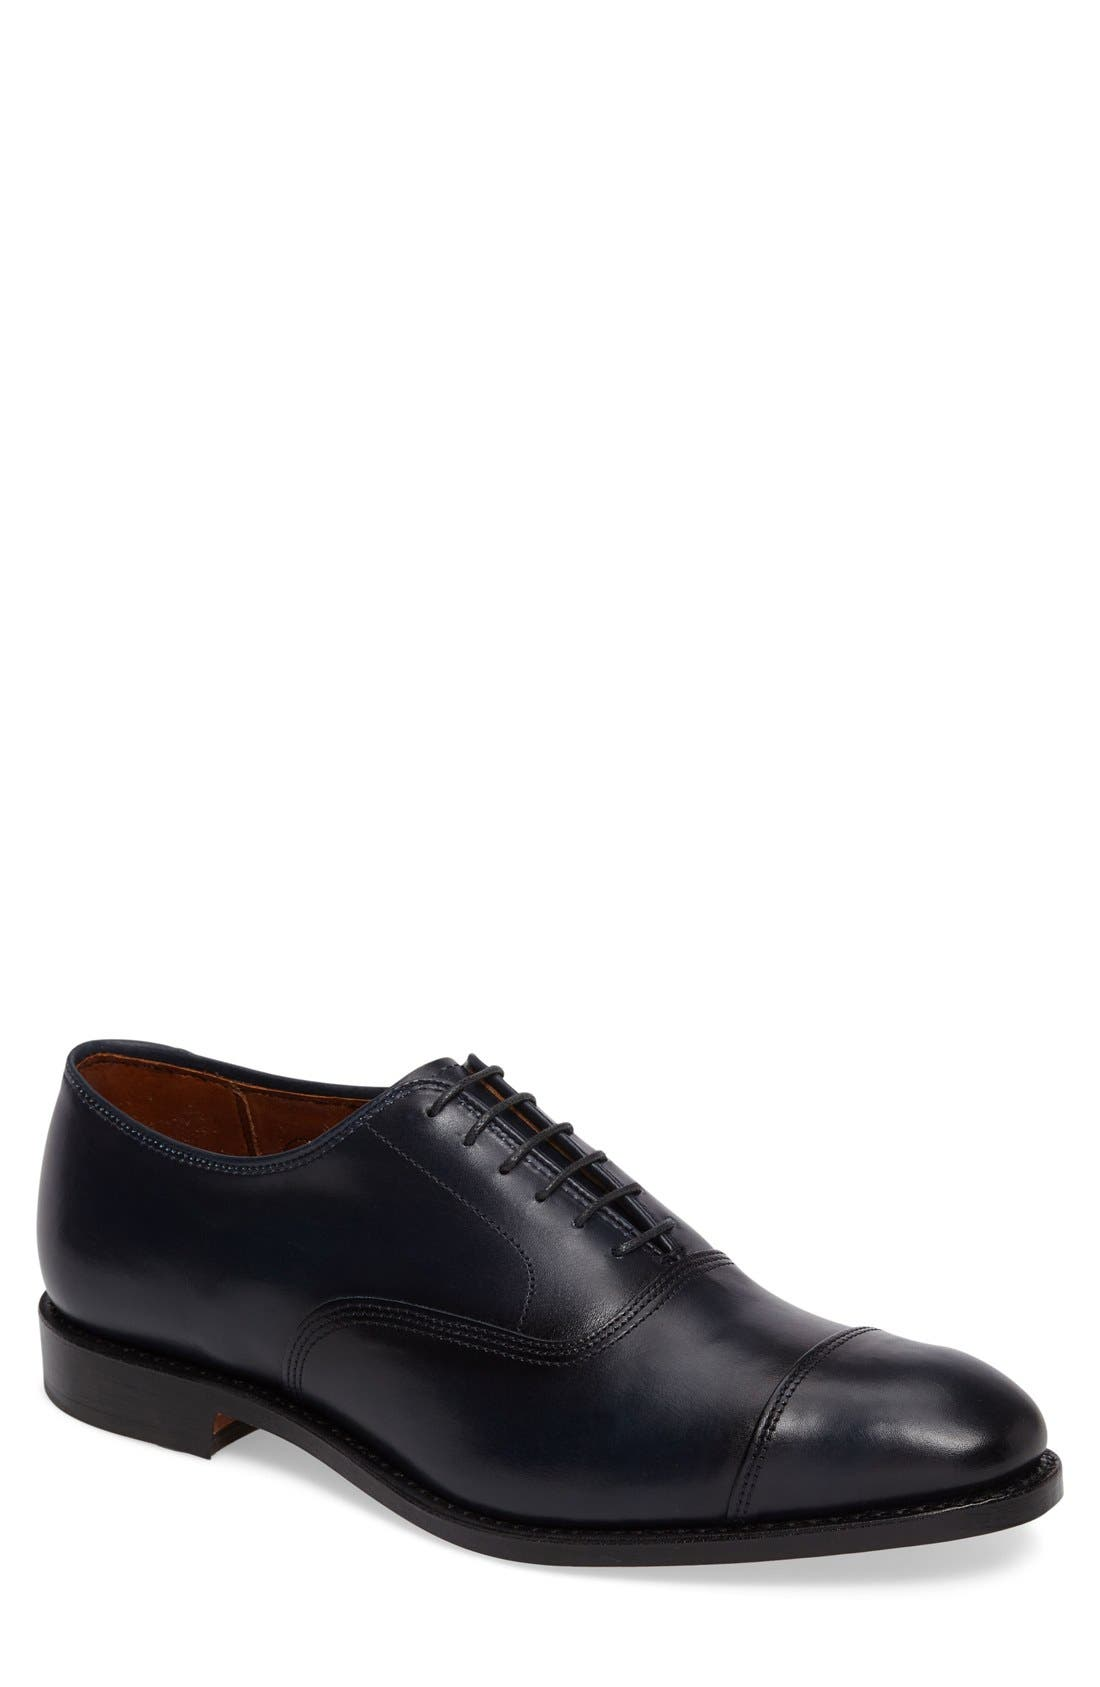 Alternate Image 1 Selected - Allen Edmonds Park Avenue Oxford (Men)